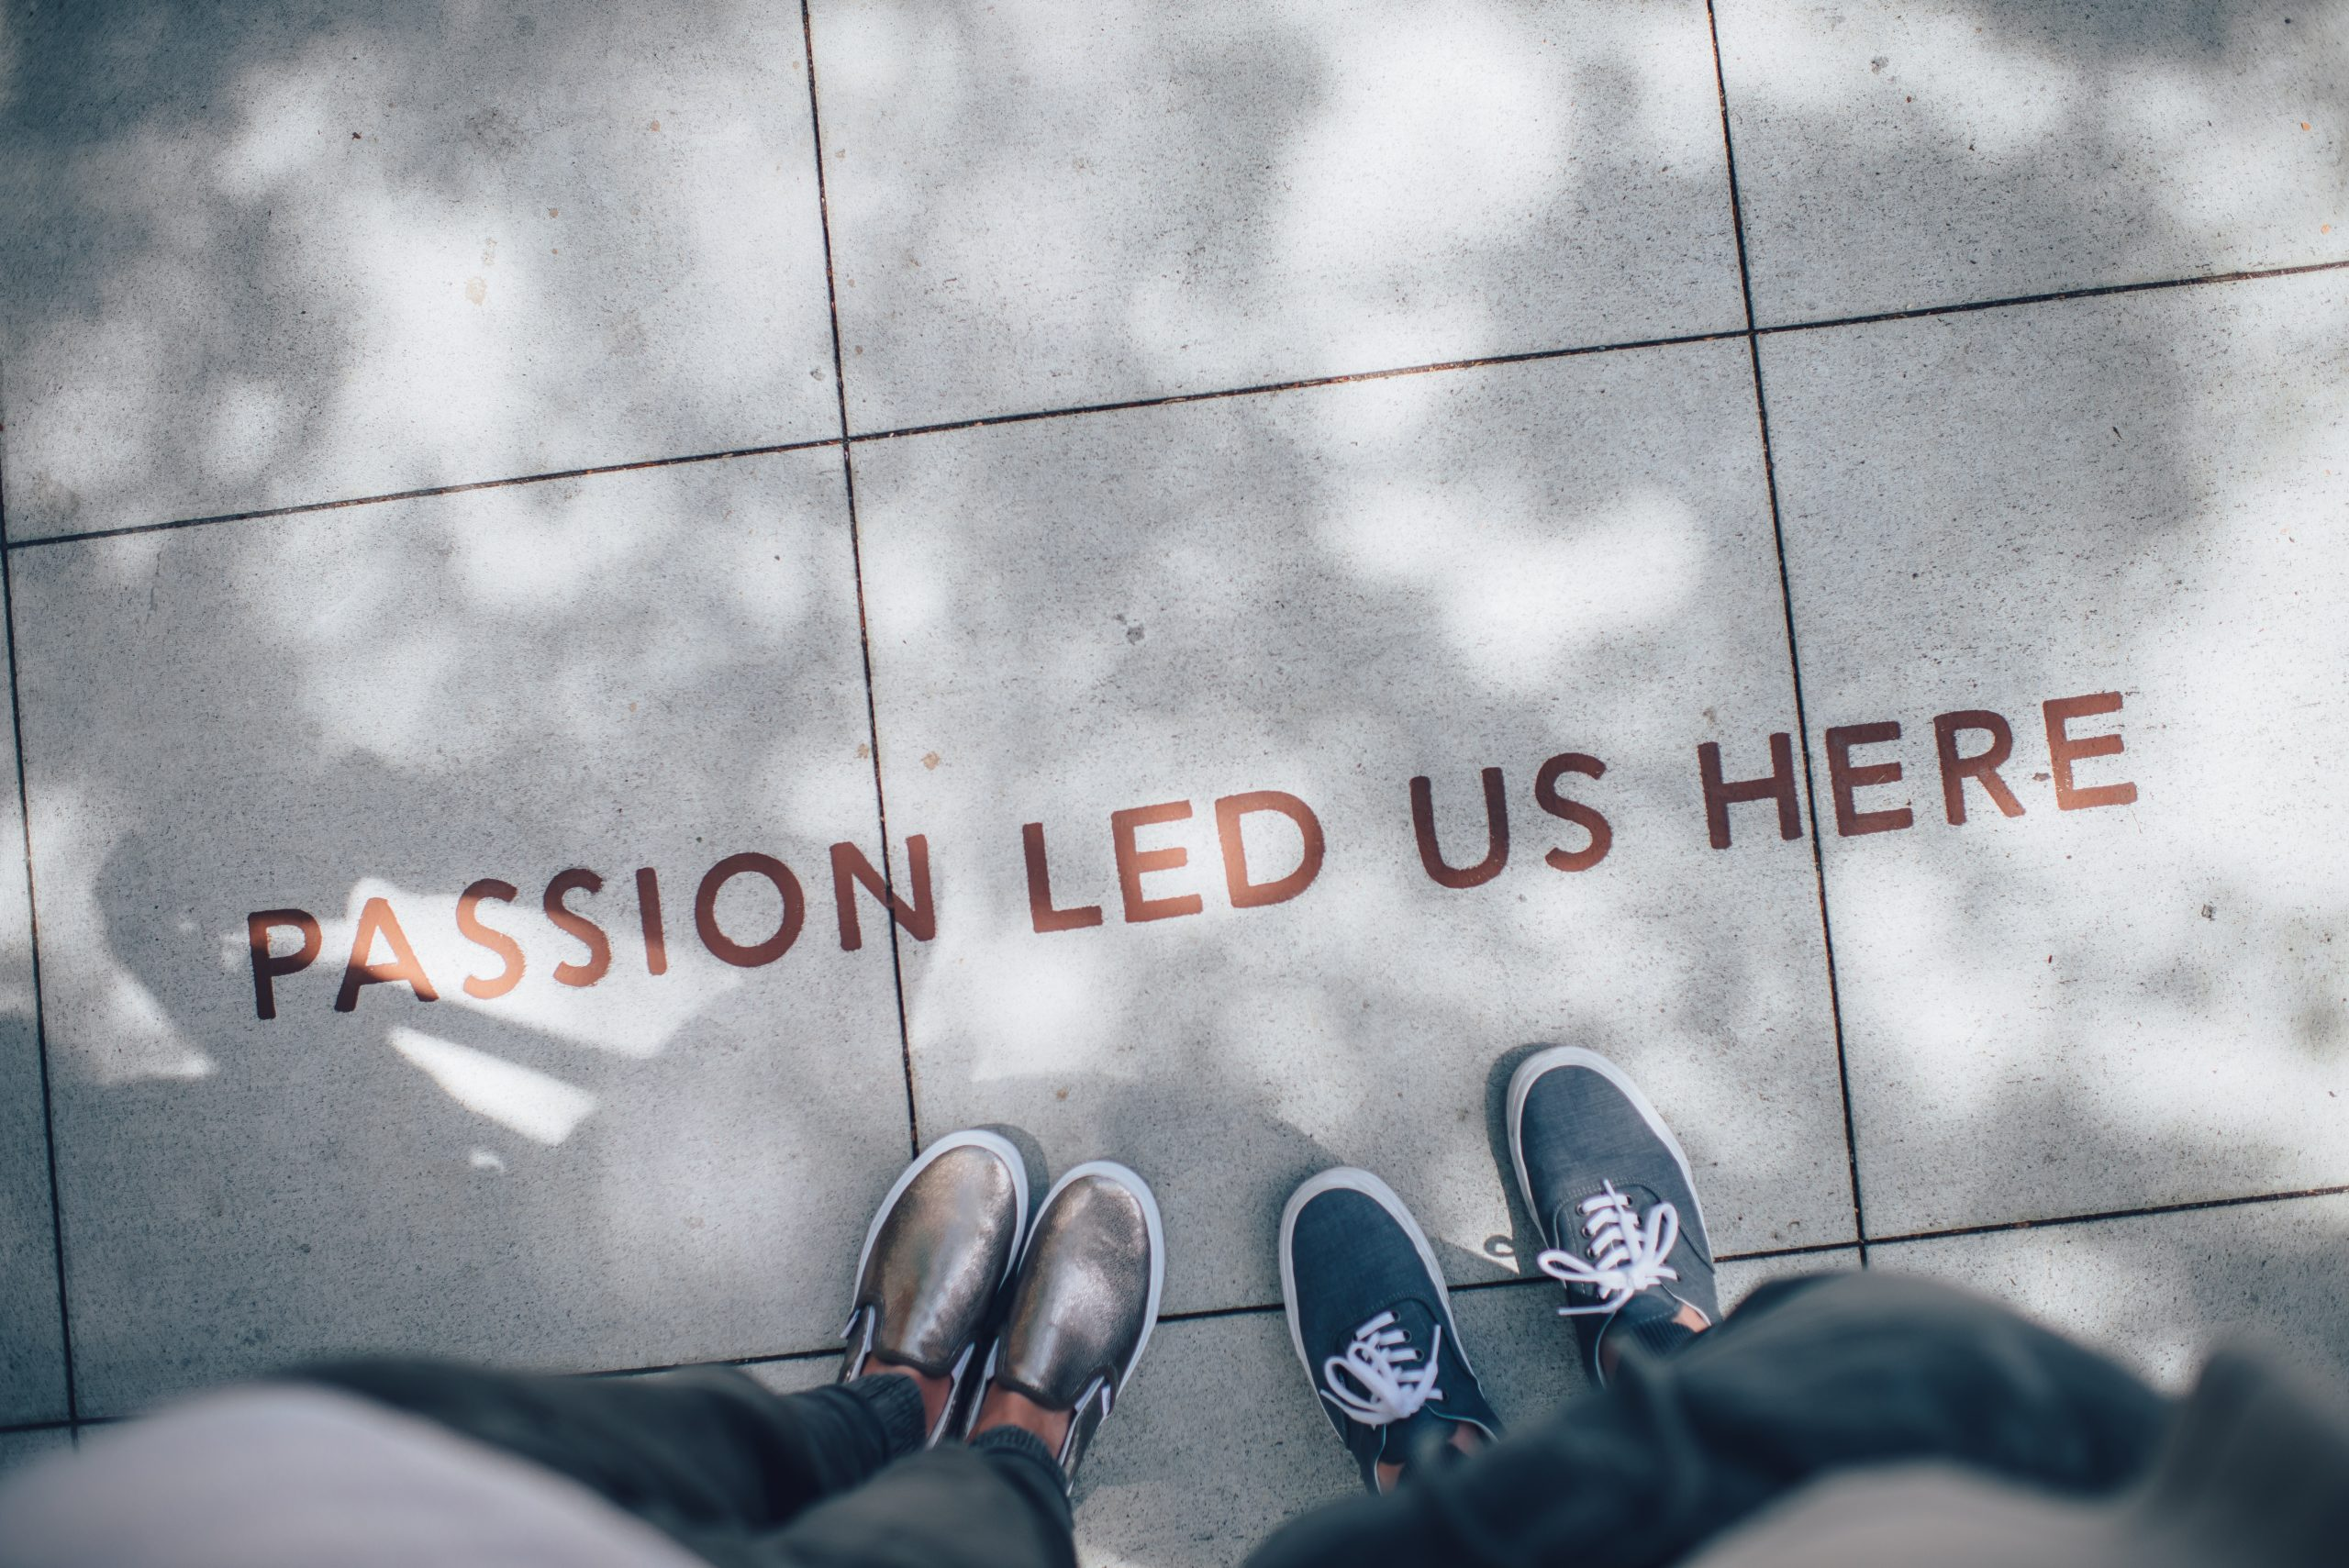 'Passion led us here' written on path